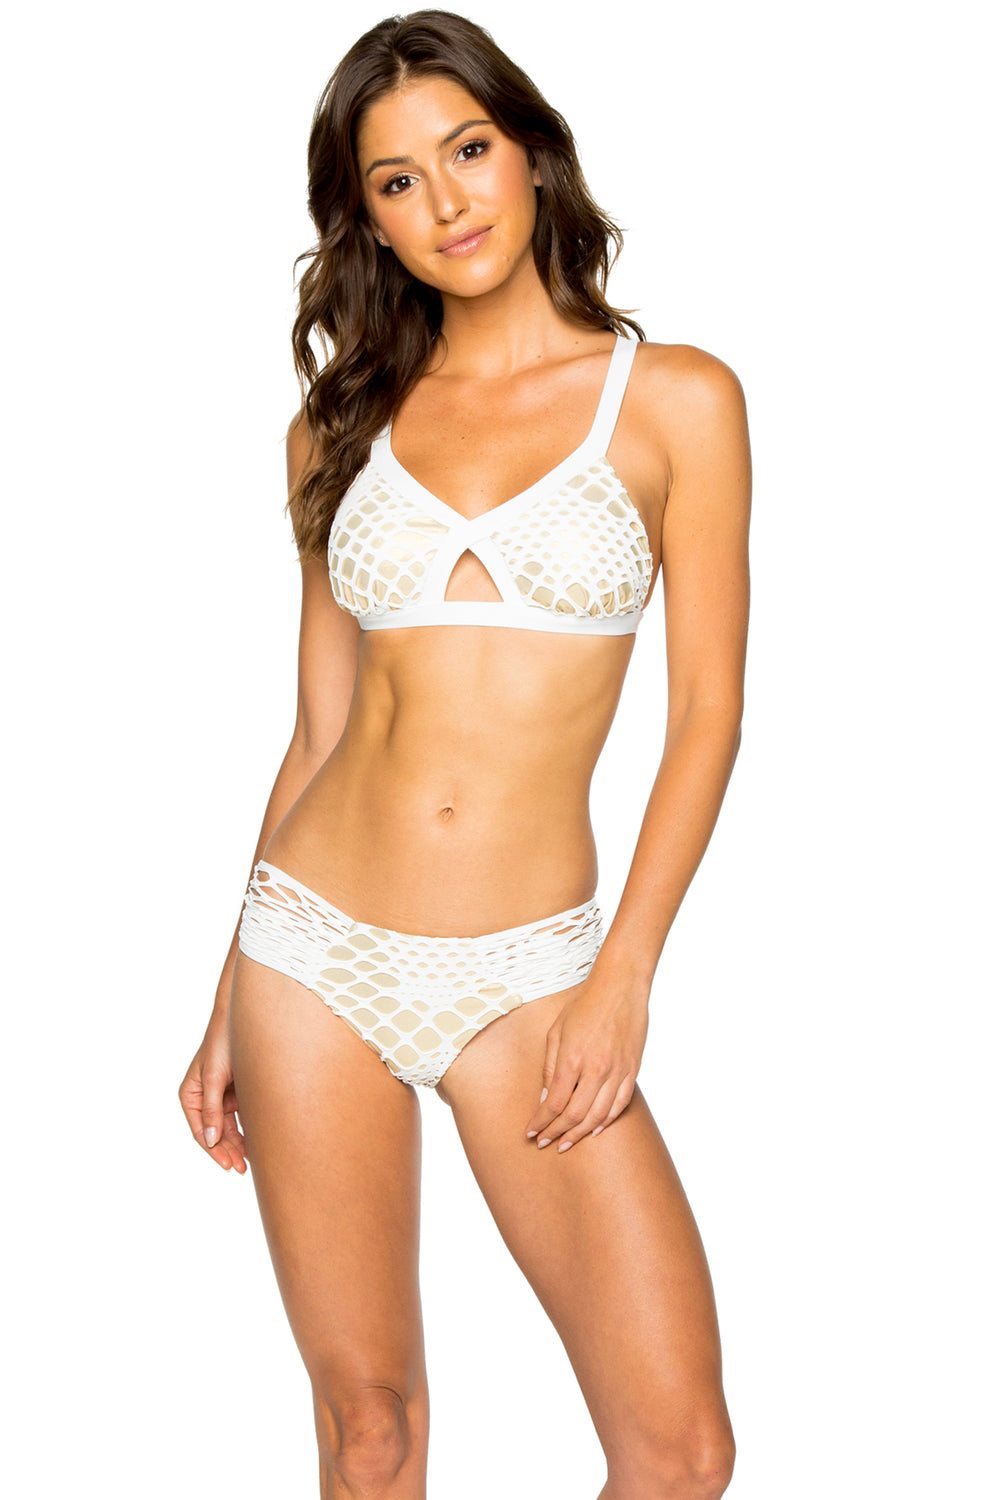 LA CABAÑA - Cross Front Cut Out Top & Scrunch Ruched Back Brazilian Bottom • Off White